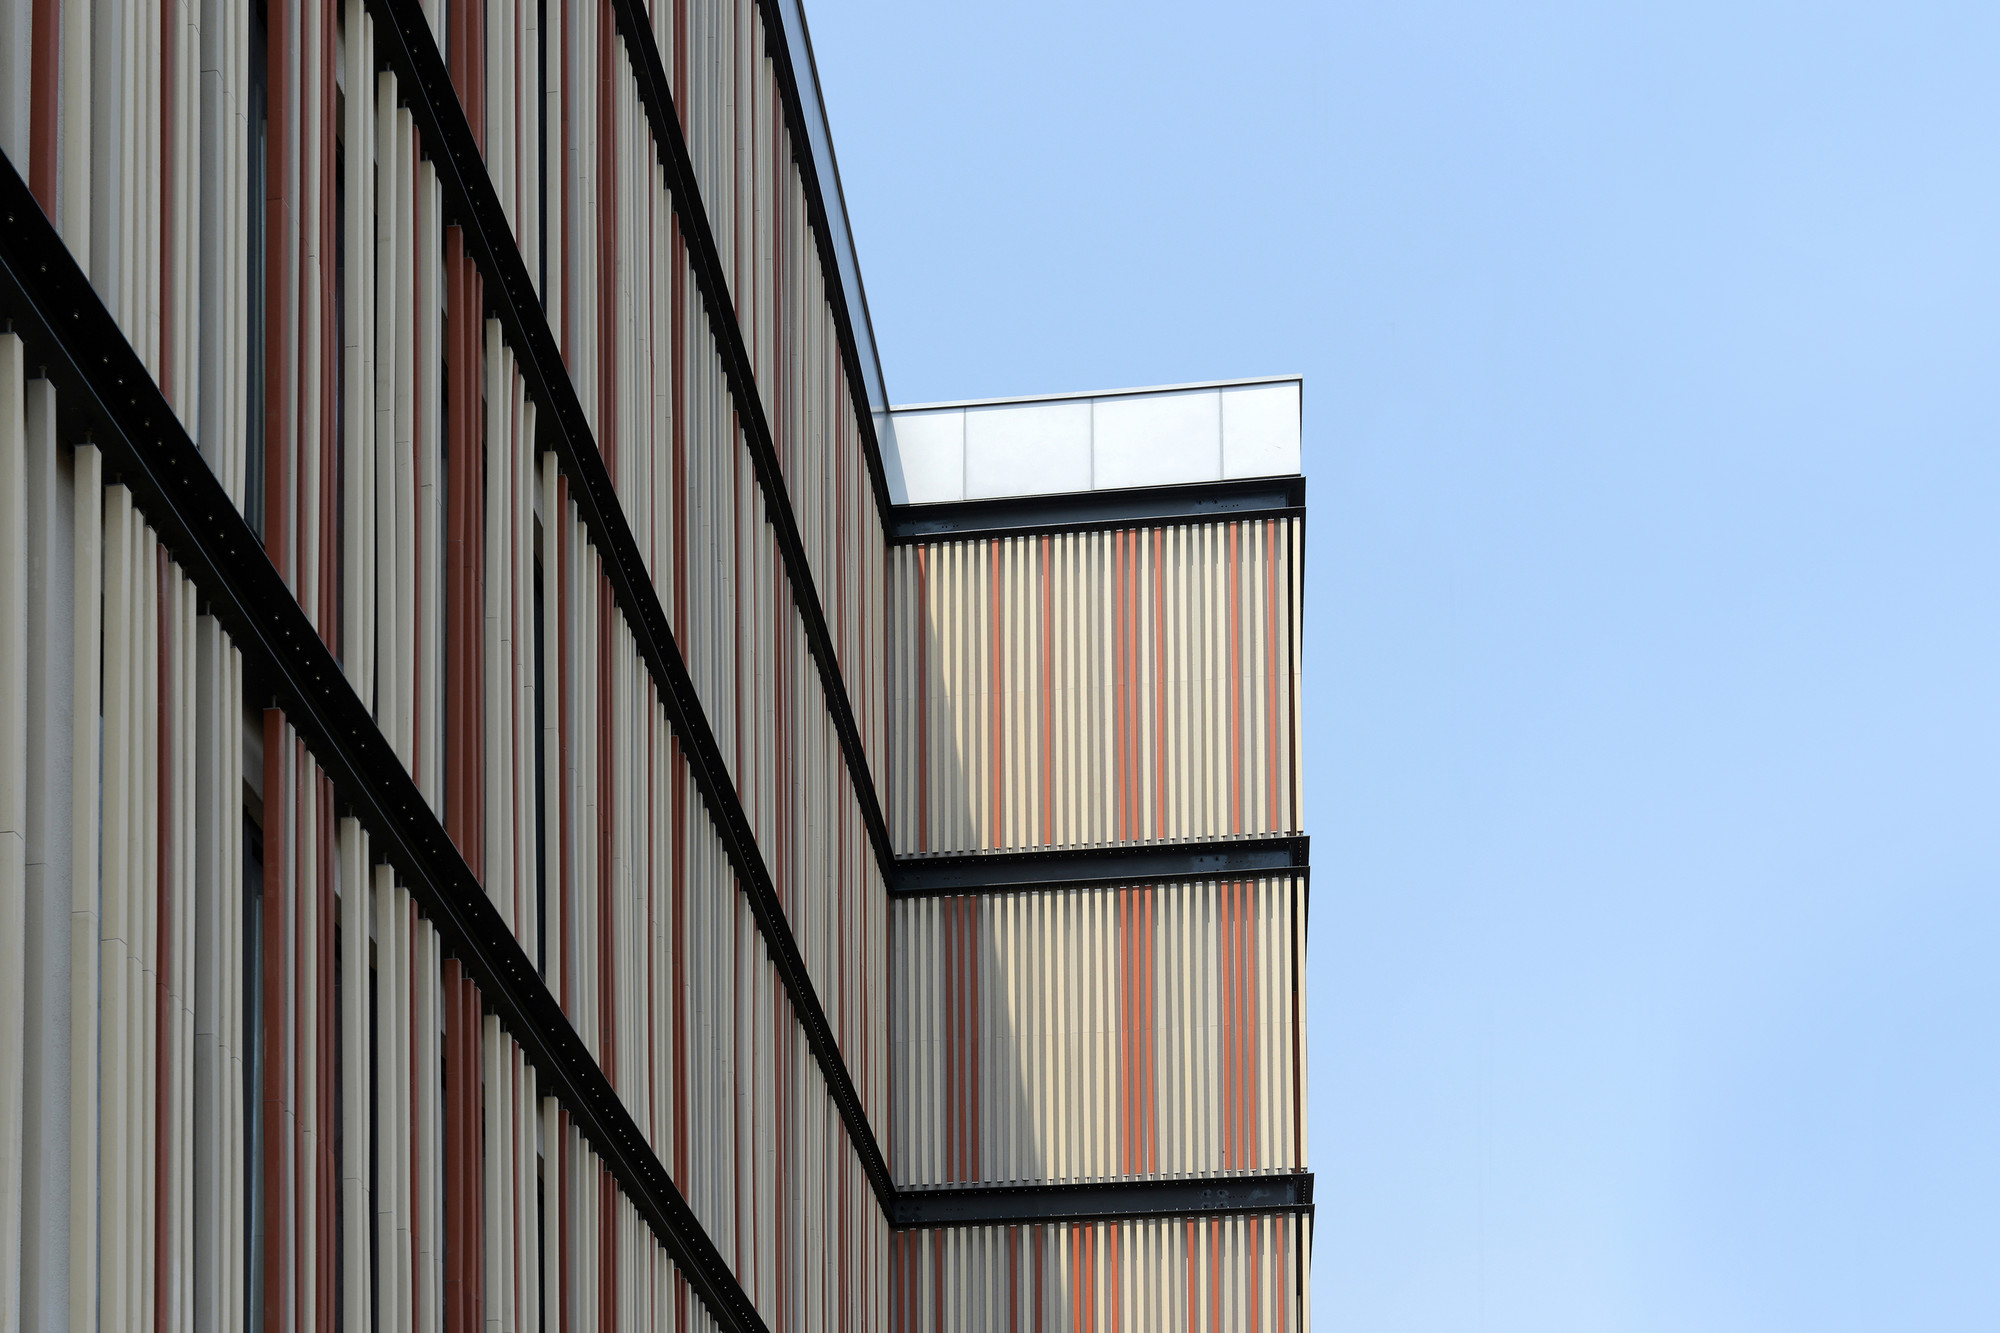 Gallery of passive house bruck peter ruge architekten 2 - Peter ruge architekten ...